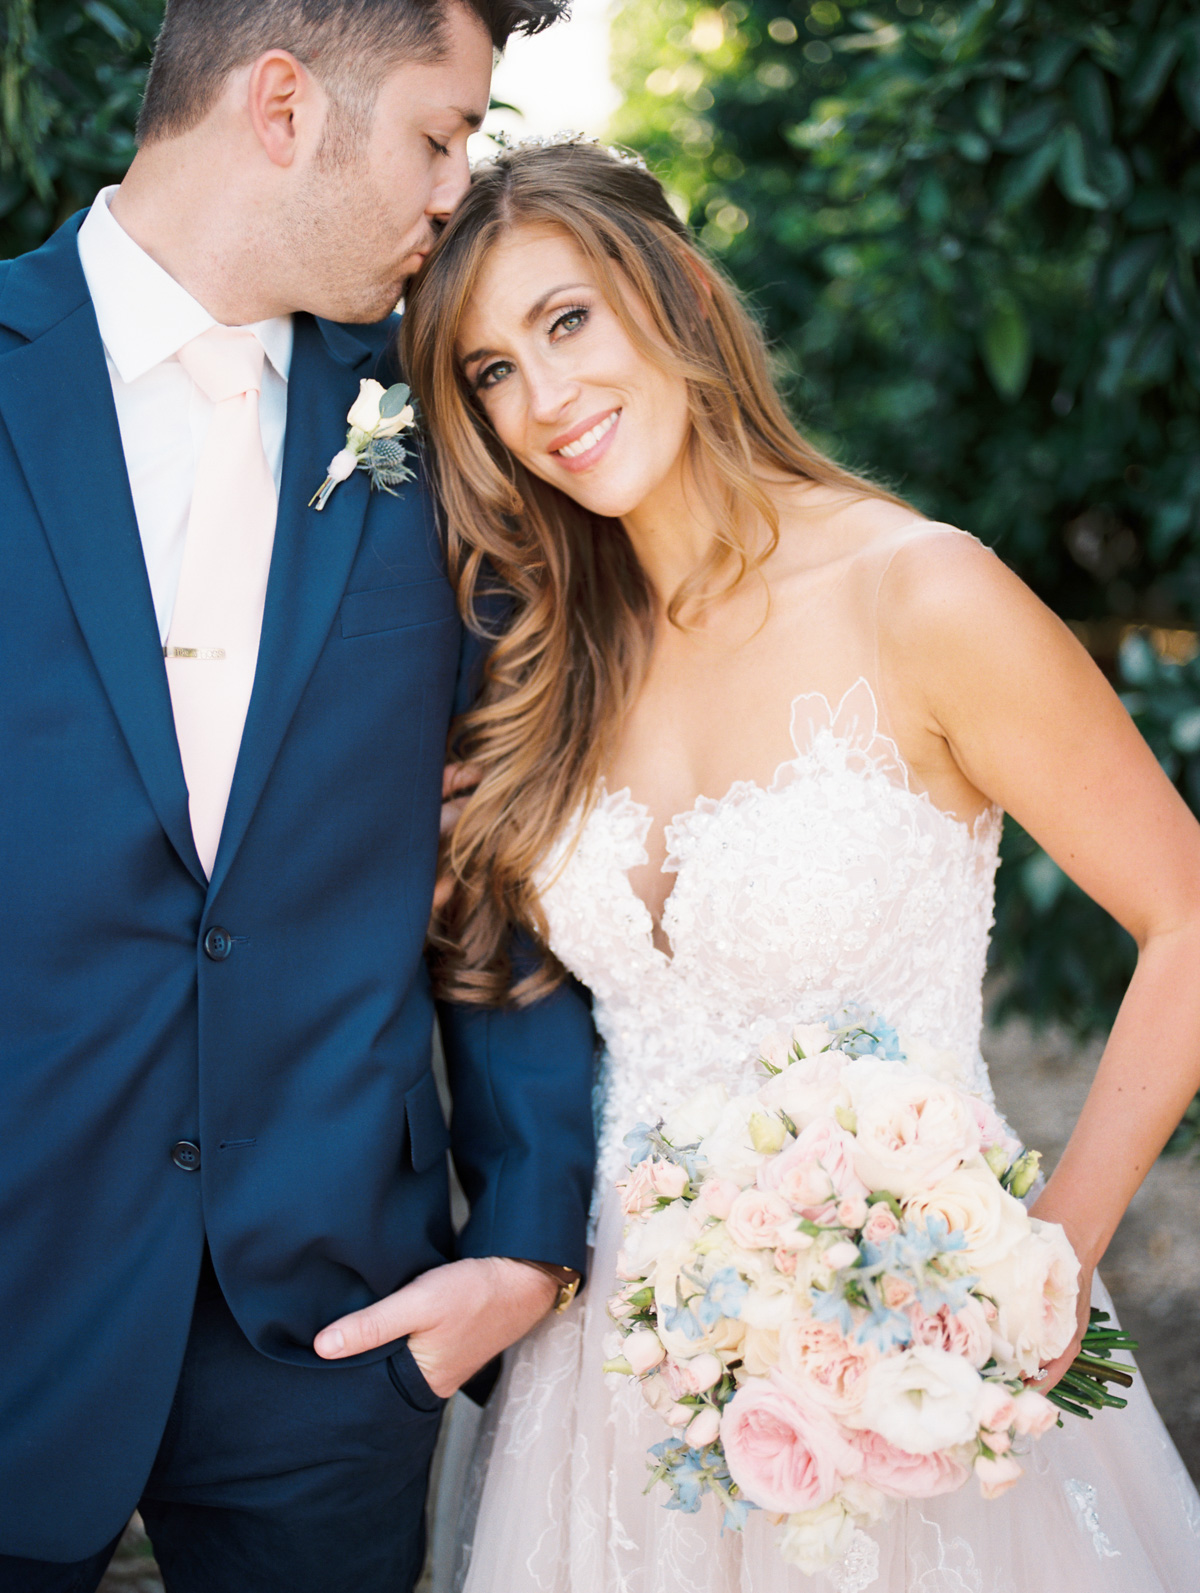 Groom kissing top of brides head  Harrison & Jocelyne's gorgeous Temecula wedding at Wiens Family Cellars captured by Betsy & John Photography   Temecula Film Photographers